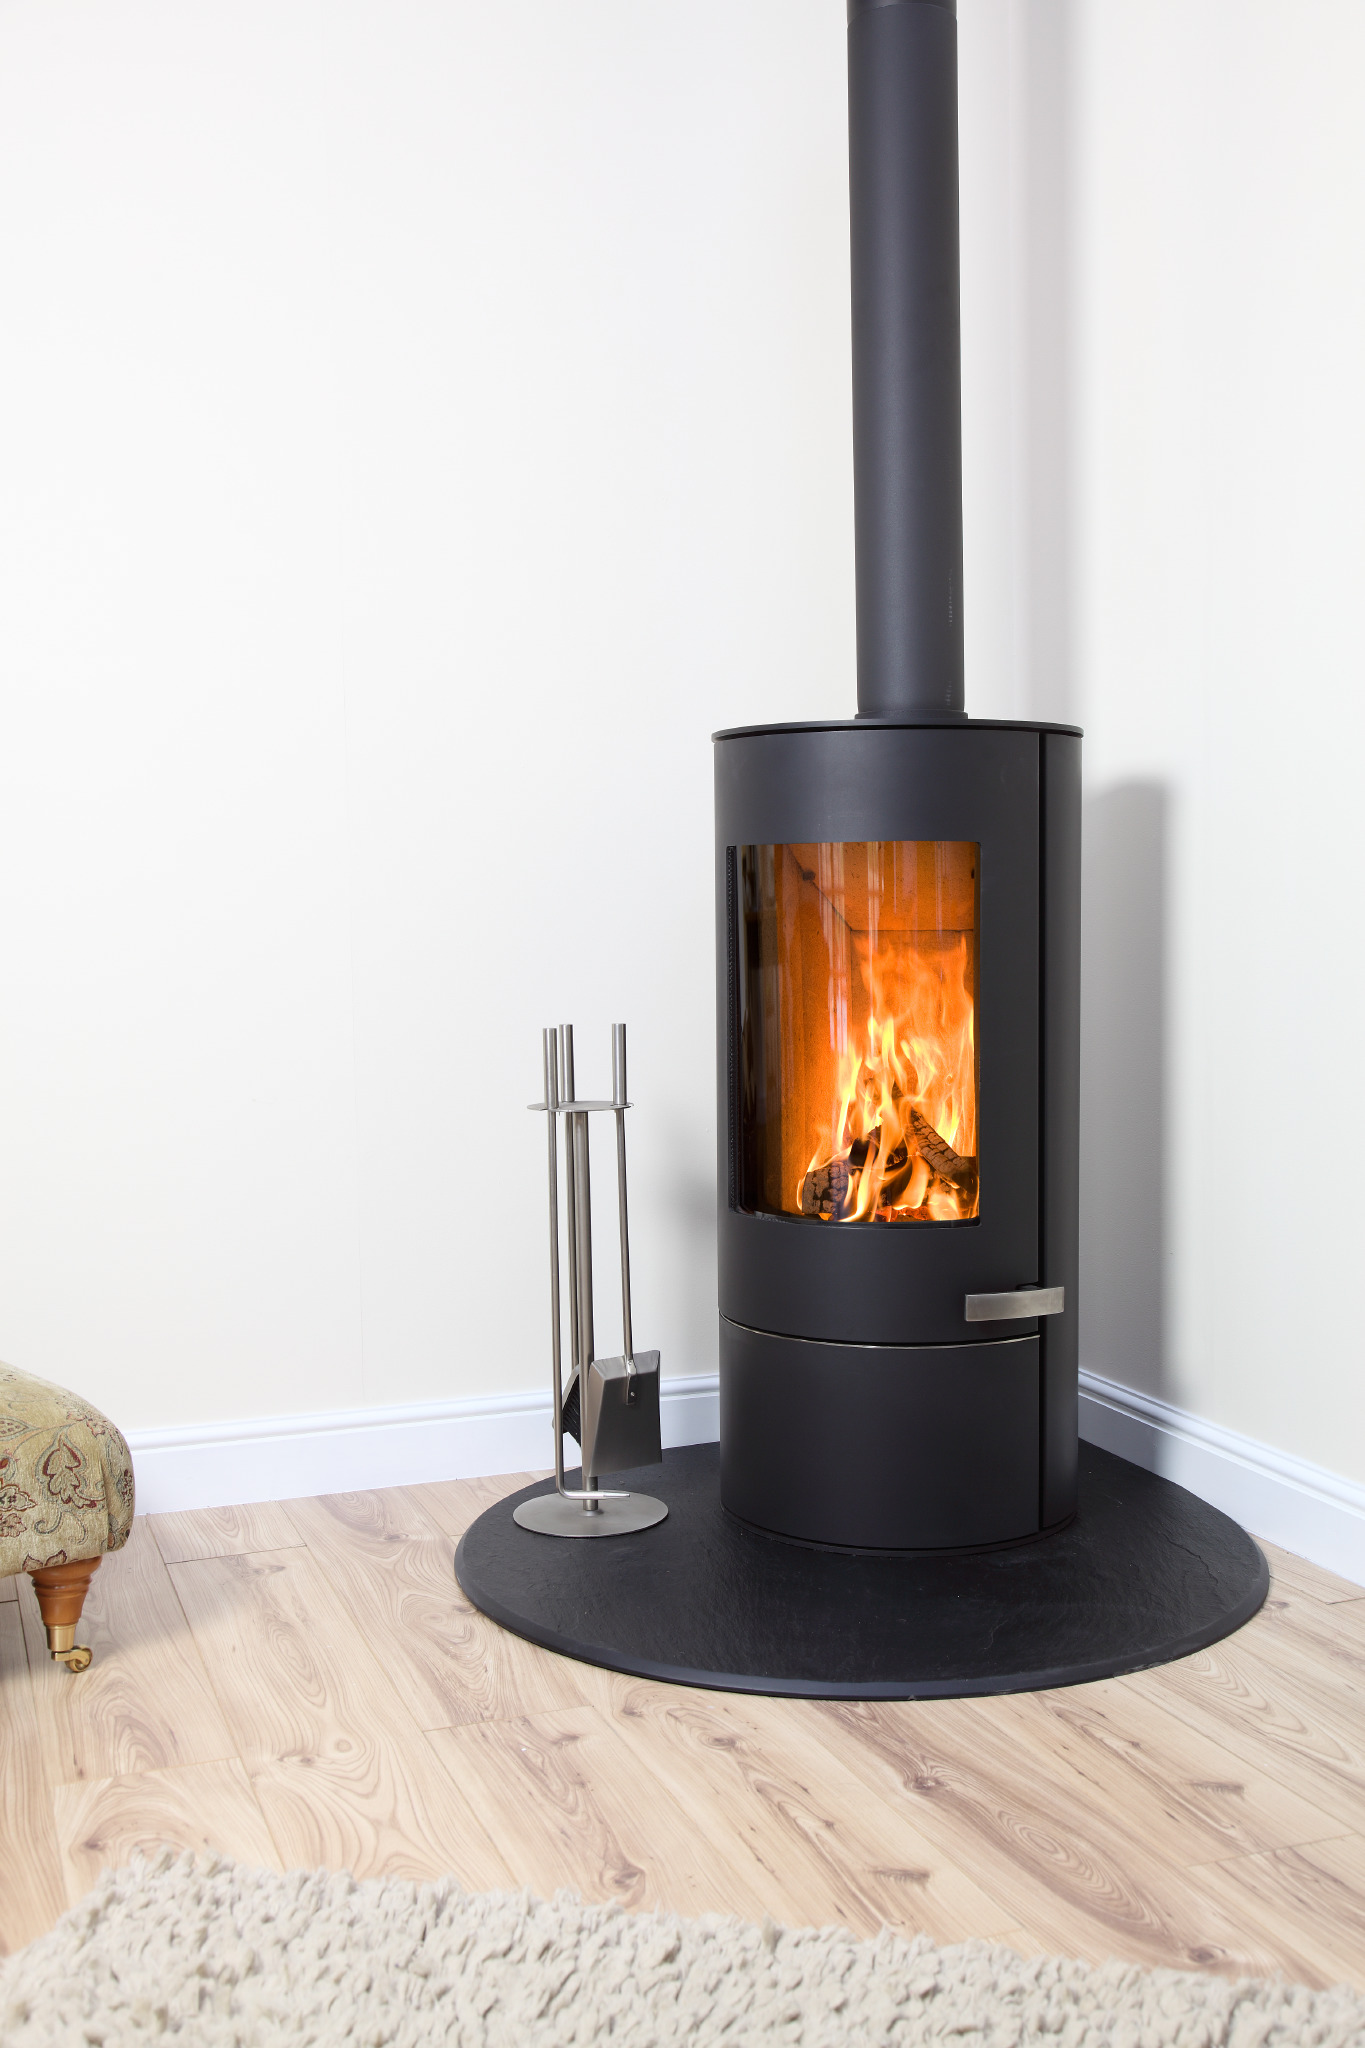 freestanding, granite hearth, slate hearth, woodburning, multifuel, Bangor, Newtownards, Belfast, Holywood, Conlig, Stove yard, Fireplaces, flue pipe, hearths, room heater, wilsons, Portaferry, Kircubbin, Greyabbey, riven slate, wooden beans, fireplace beams, fire chambers, open fires, logs, coal, grates, stove glass, grate bars, ards fireplaces, Jubilee Road, Helensbay, Crawfordsburn, flexi flue, chimney cowls, down draught cowls, gas, natural gas, reflex 75T, log effect fire, Gazco, stovax, medip, arada, varde, Henley, hunter, yeoman, curved hearths, glass hearths